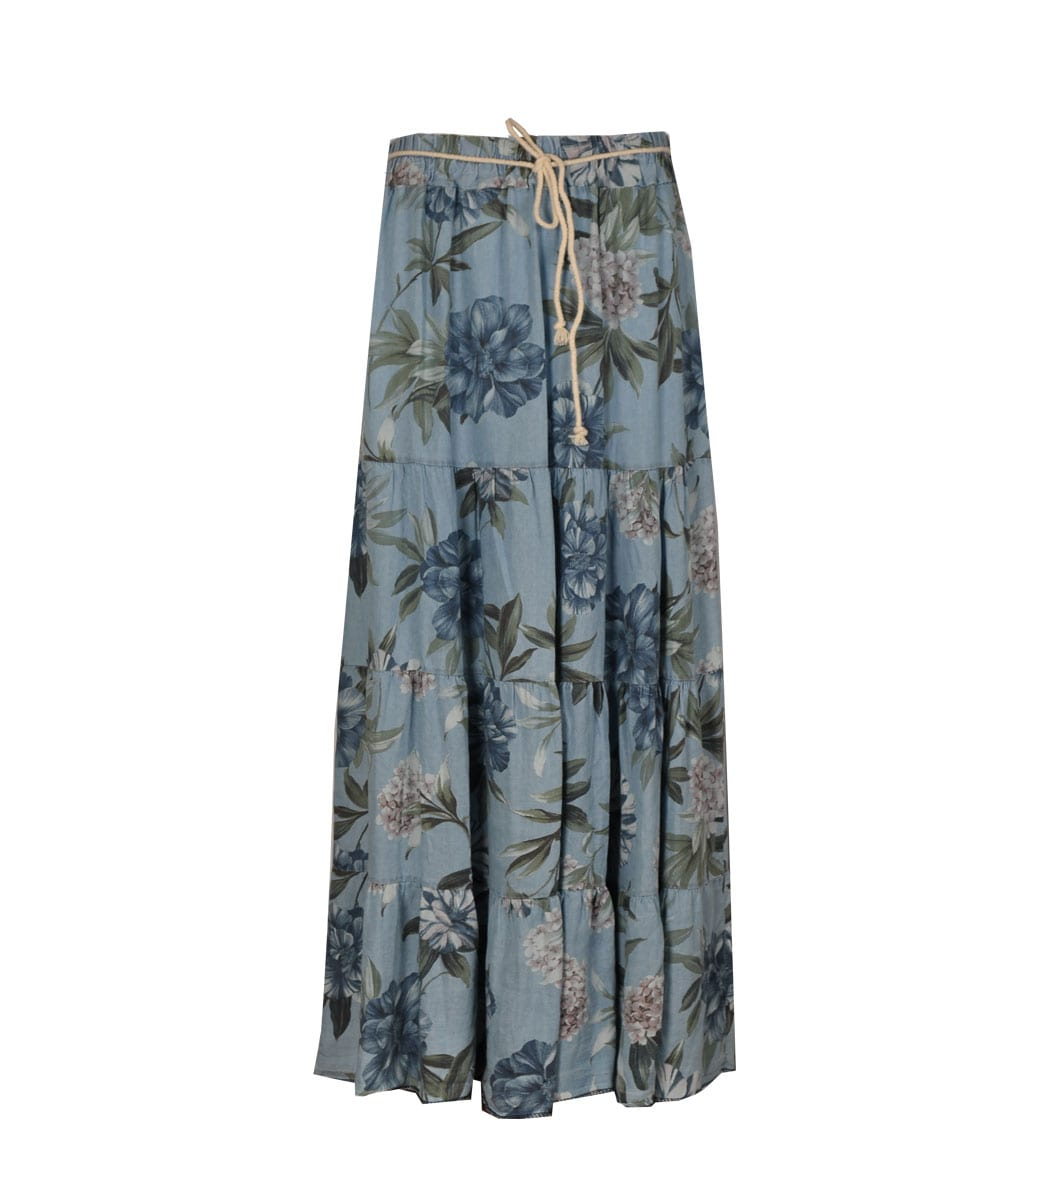 Floral print tiered chambray skirt